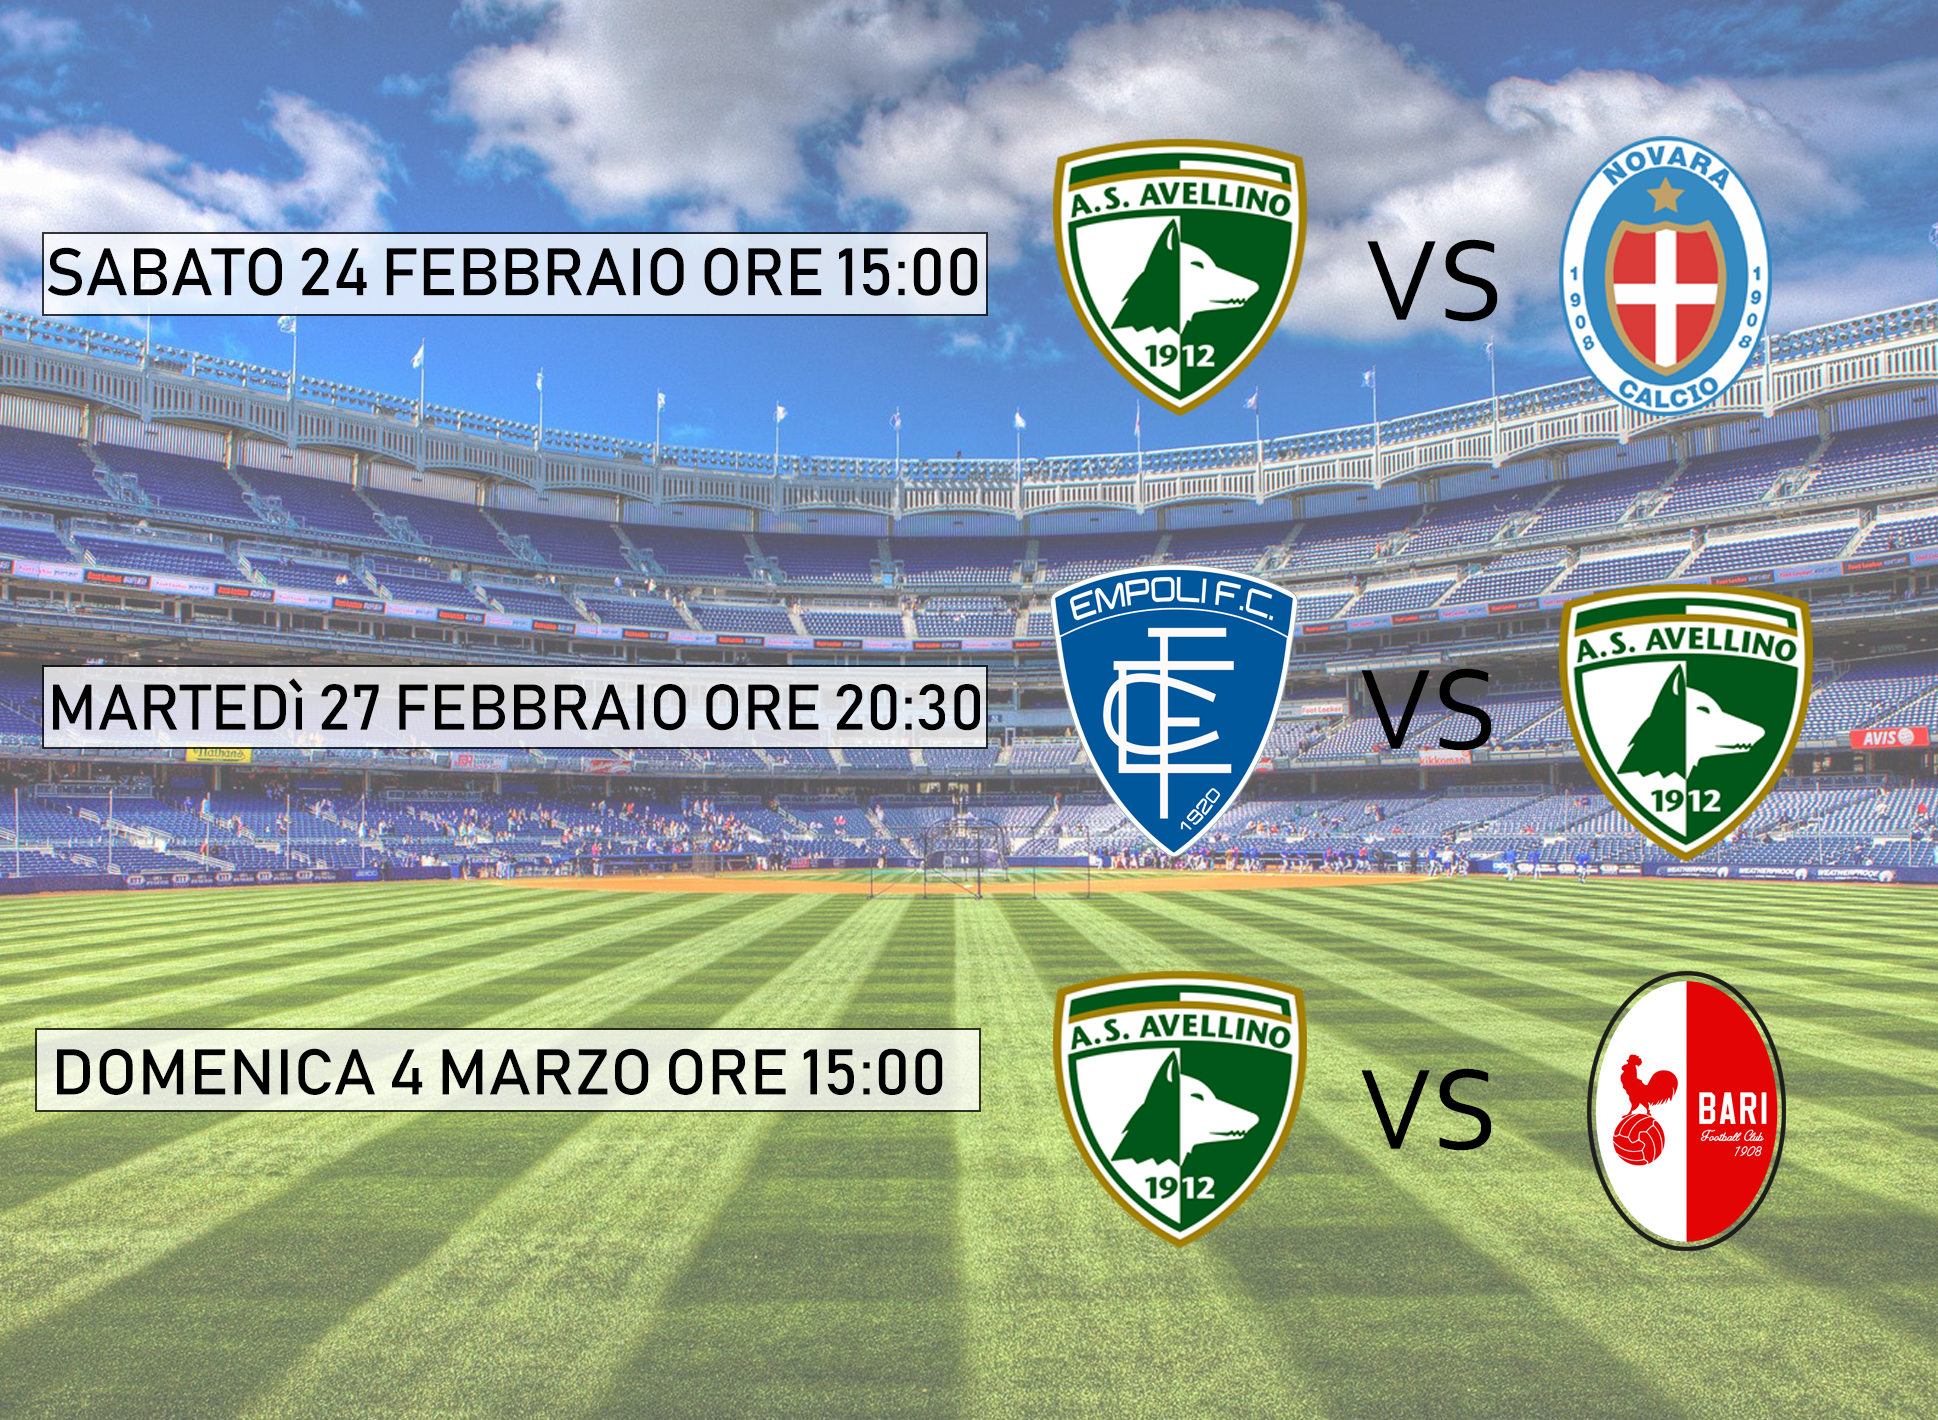 Calendario Avellino Calcio.Calendario Avellino Calcio Lab Tv